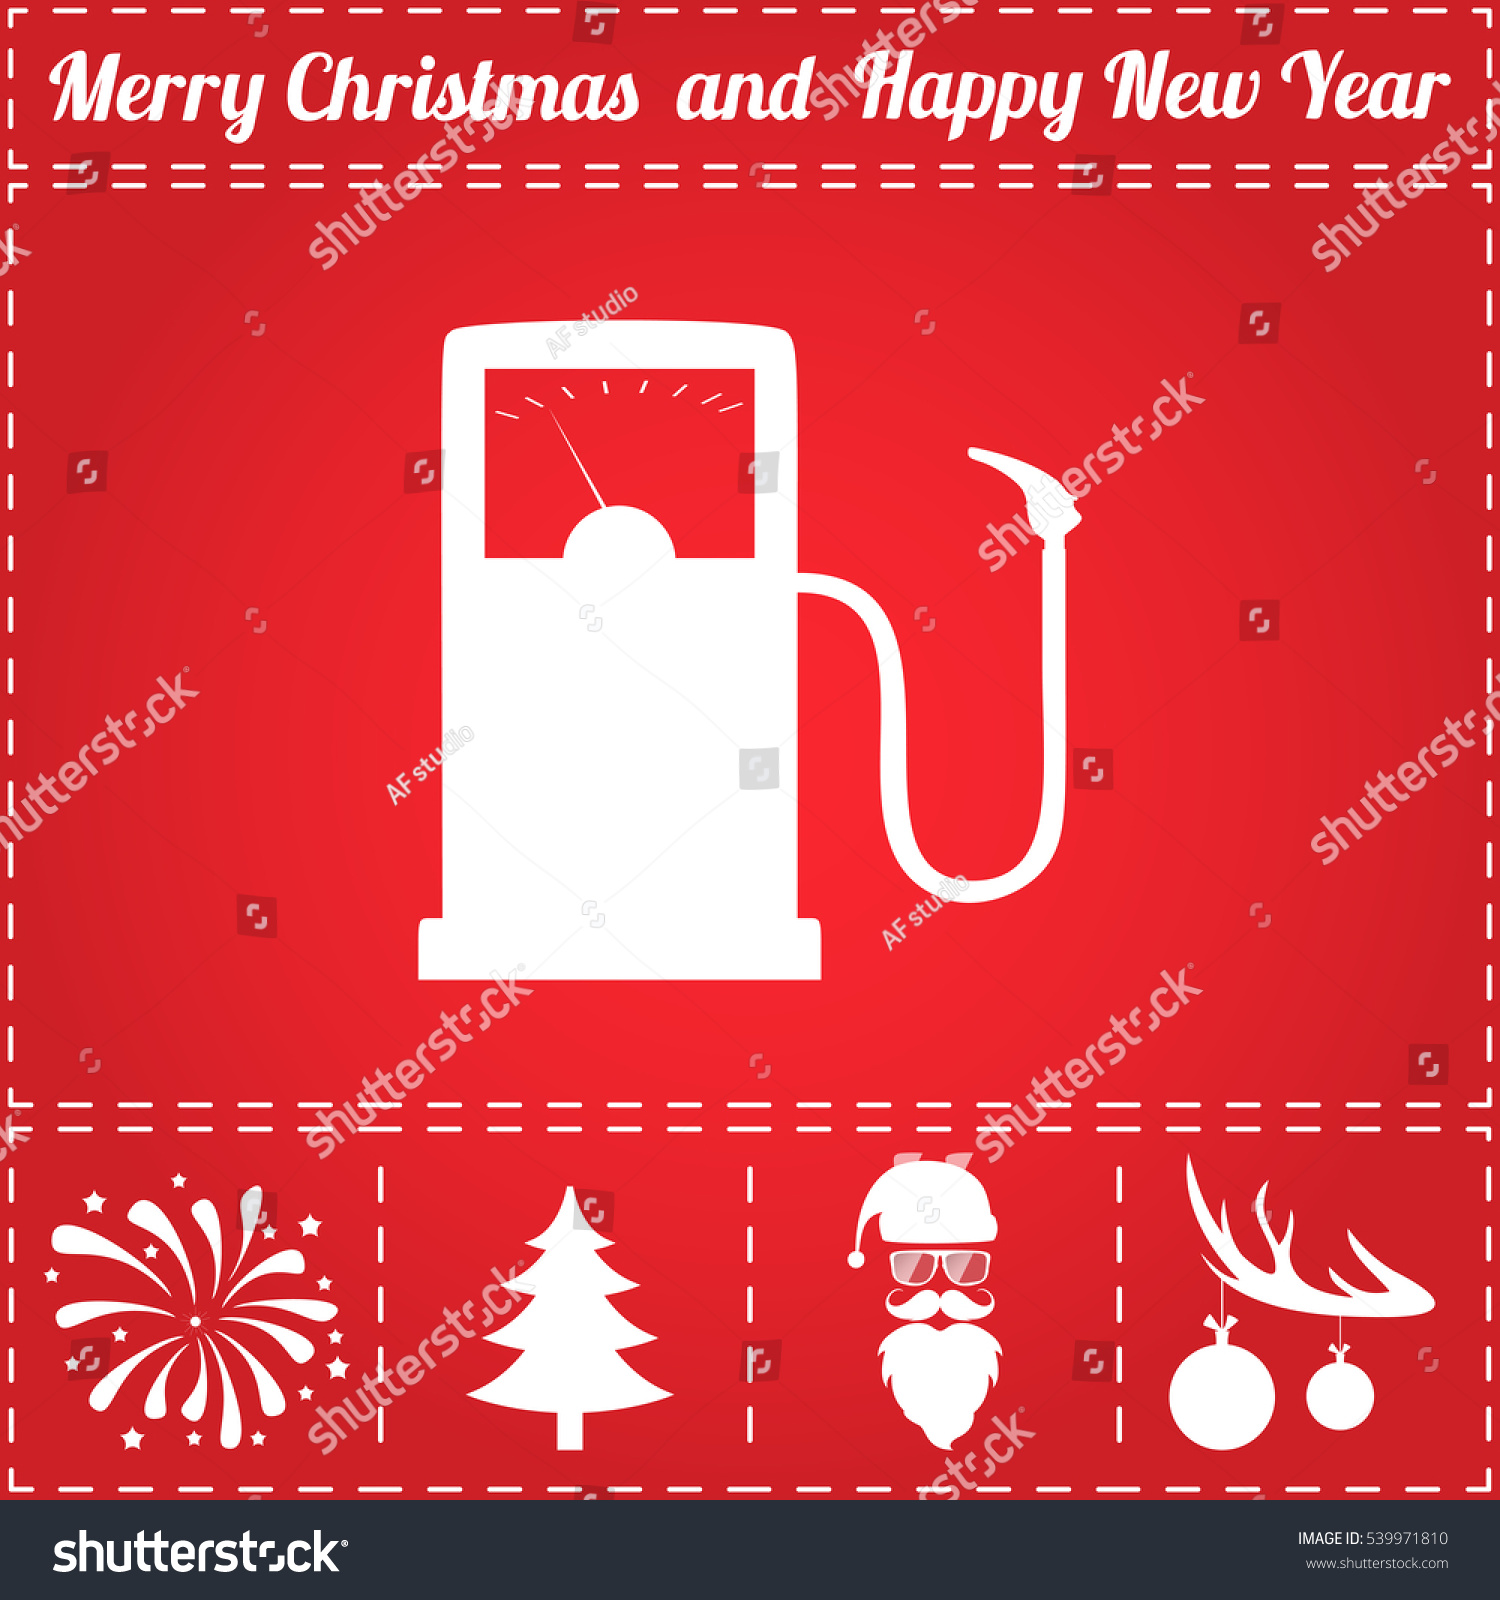 gas station icon vector and bonus symbol for new year santa claus christmas - Are Gas Stations Open On Christmas